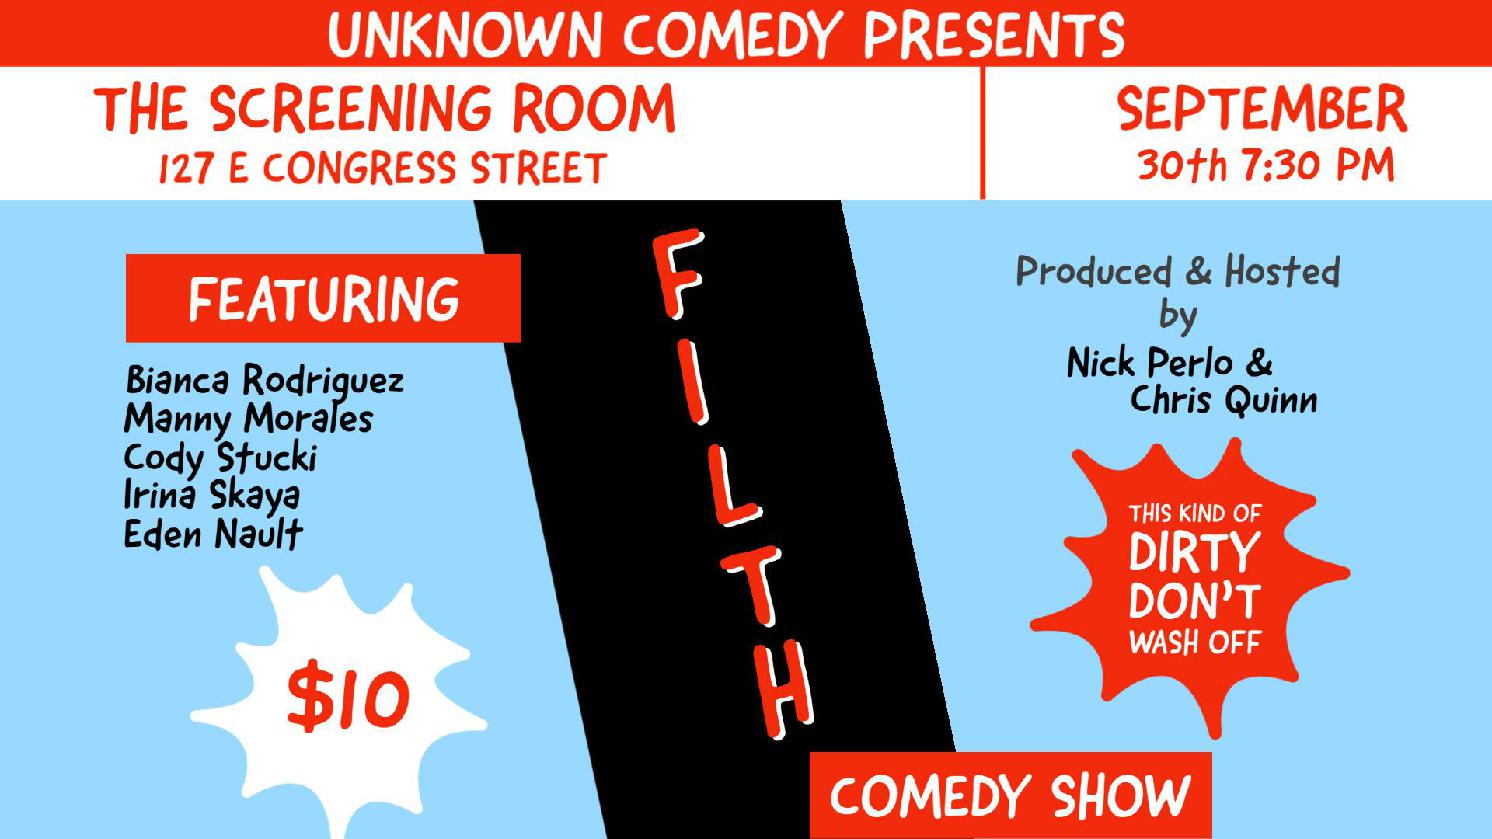 FILTH! A Comedy Show by Unknown Comedy